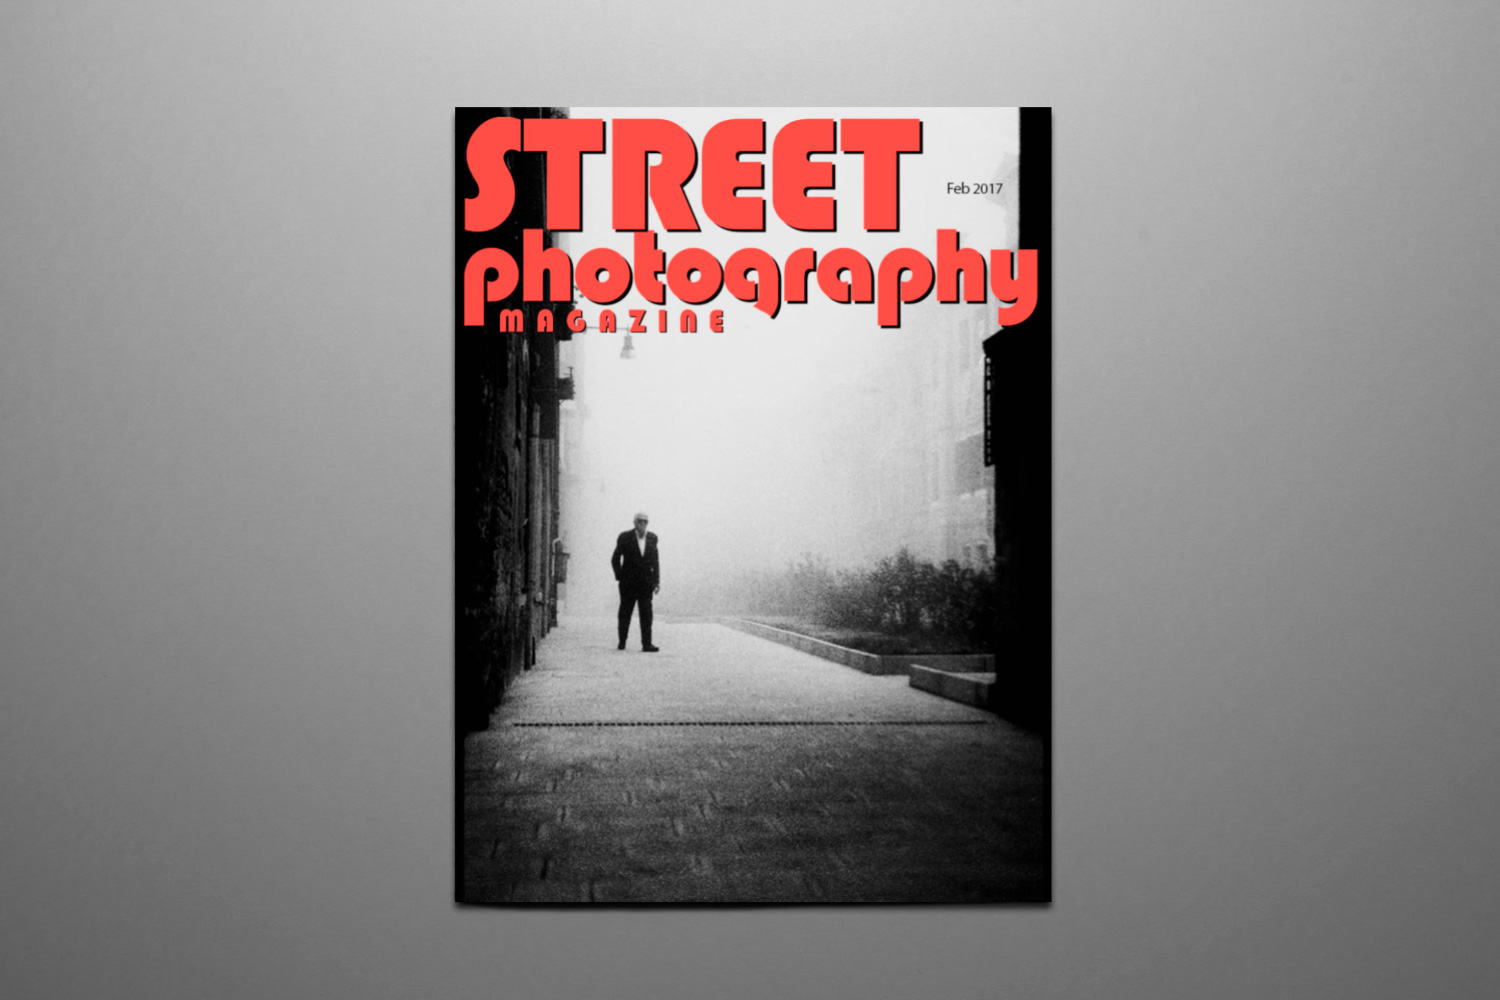 Street Photography Magazine #47 (couverture - cover) - Février 2017 (February 2017)